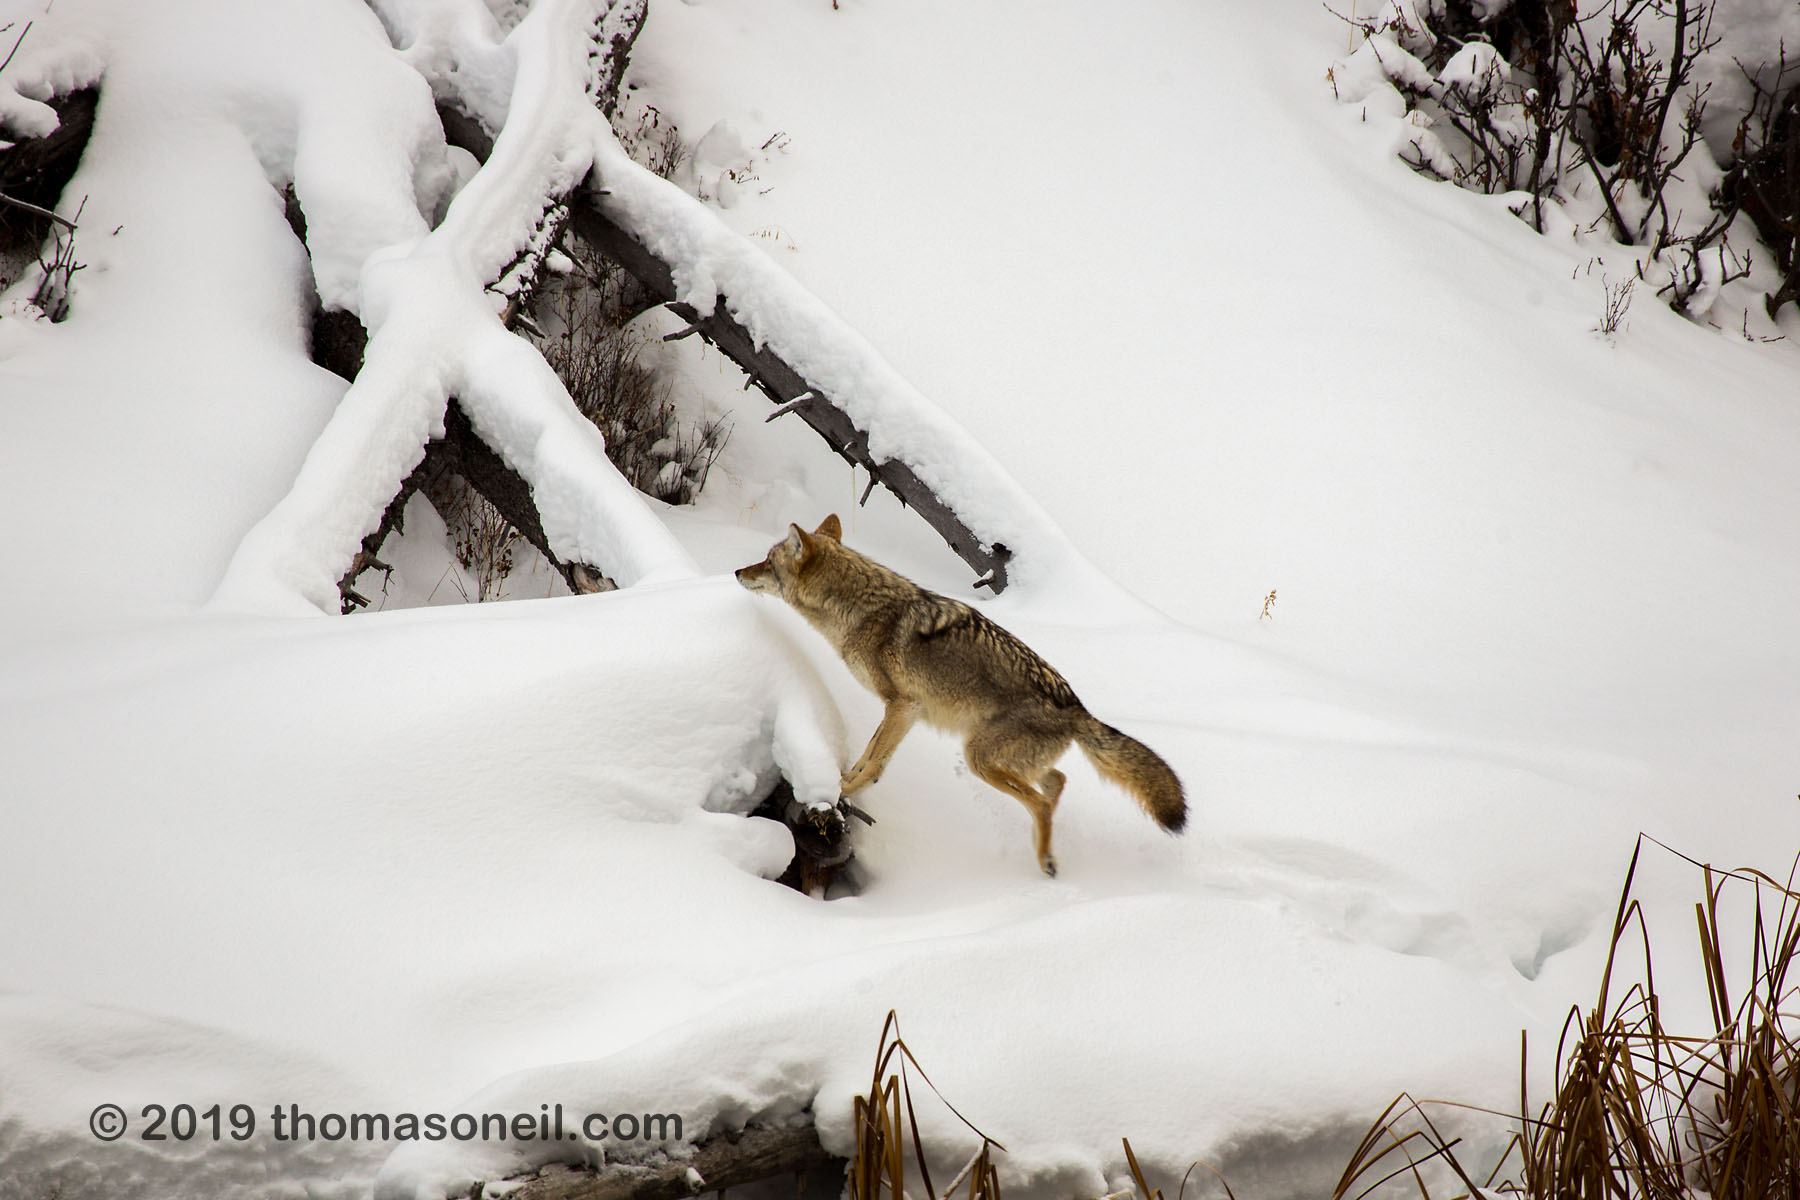 Coyote jumps up to the fallen tree, Yellowstone National Park, January 25, 2019.  Click for next photo.